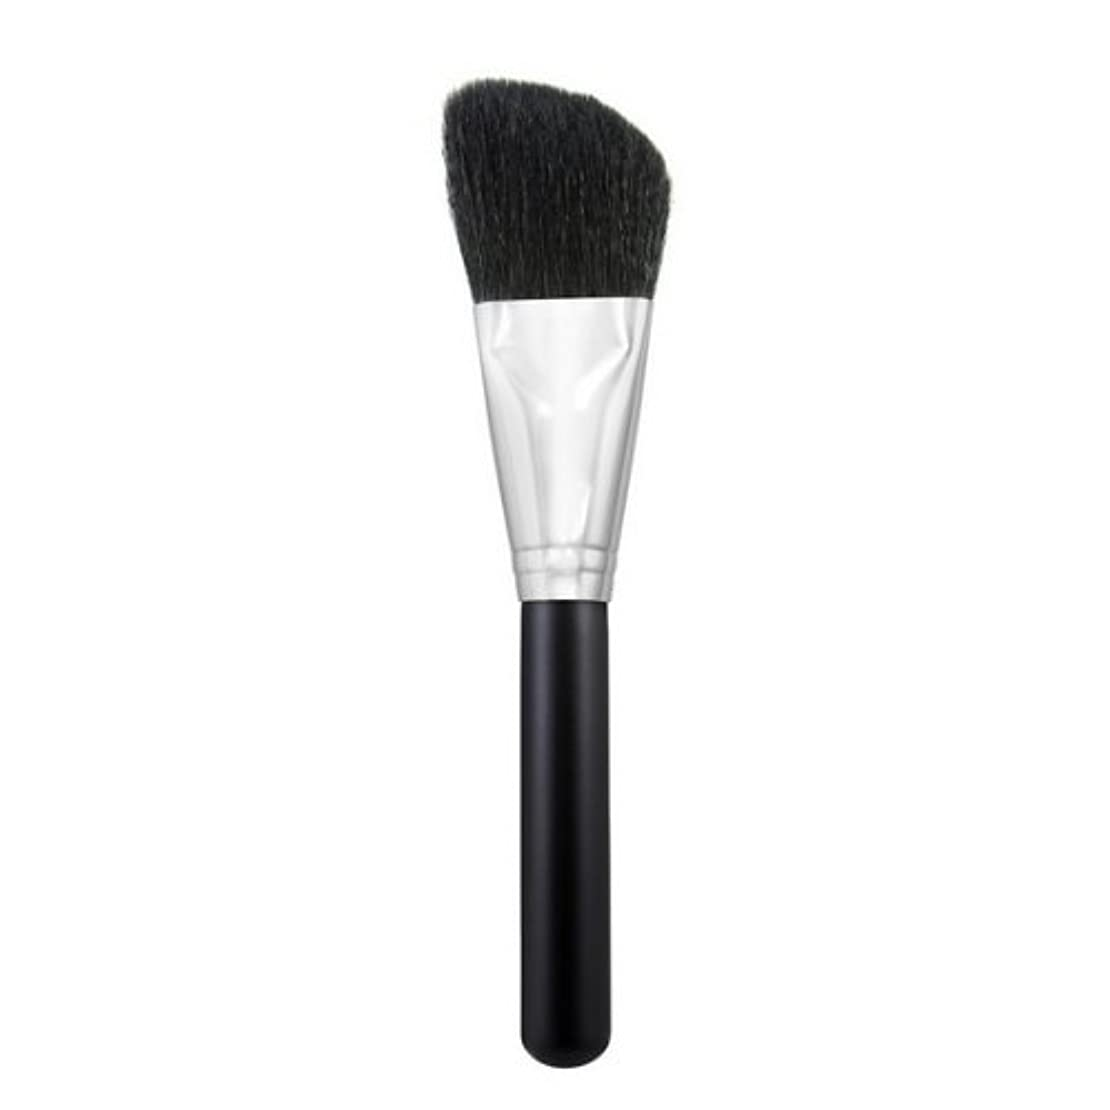 捨てるサドルに付ける(6 Pack) MORPHE BRUSHES Angle Powder/Contour Brush - M402 (並行輸入品)